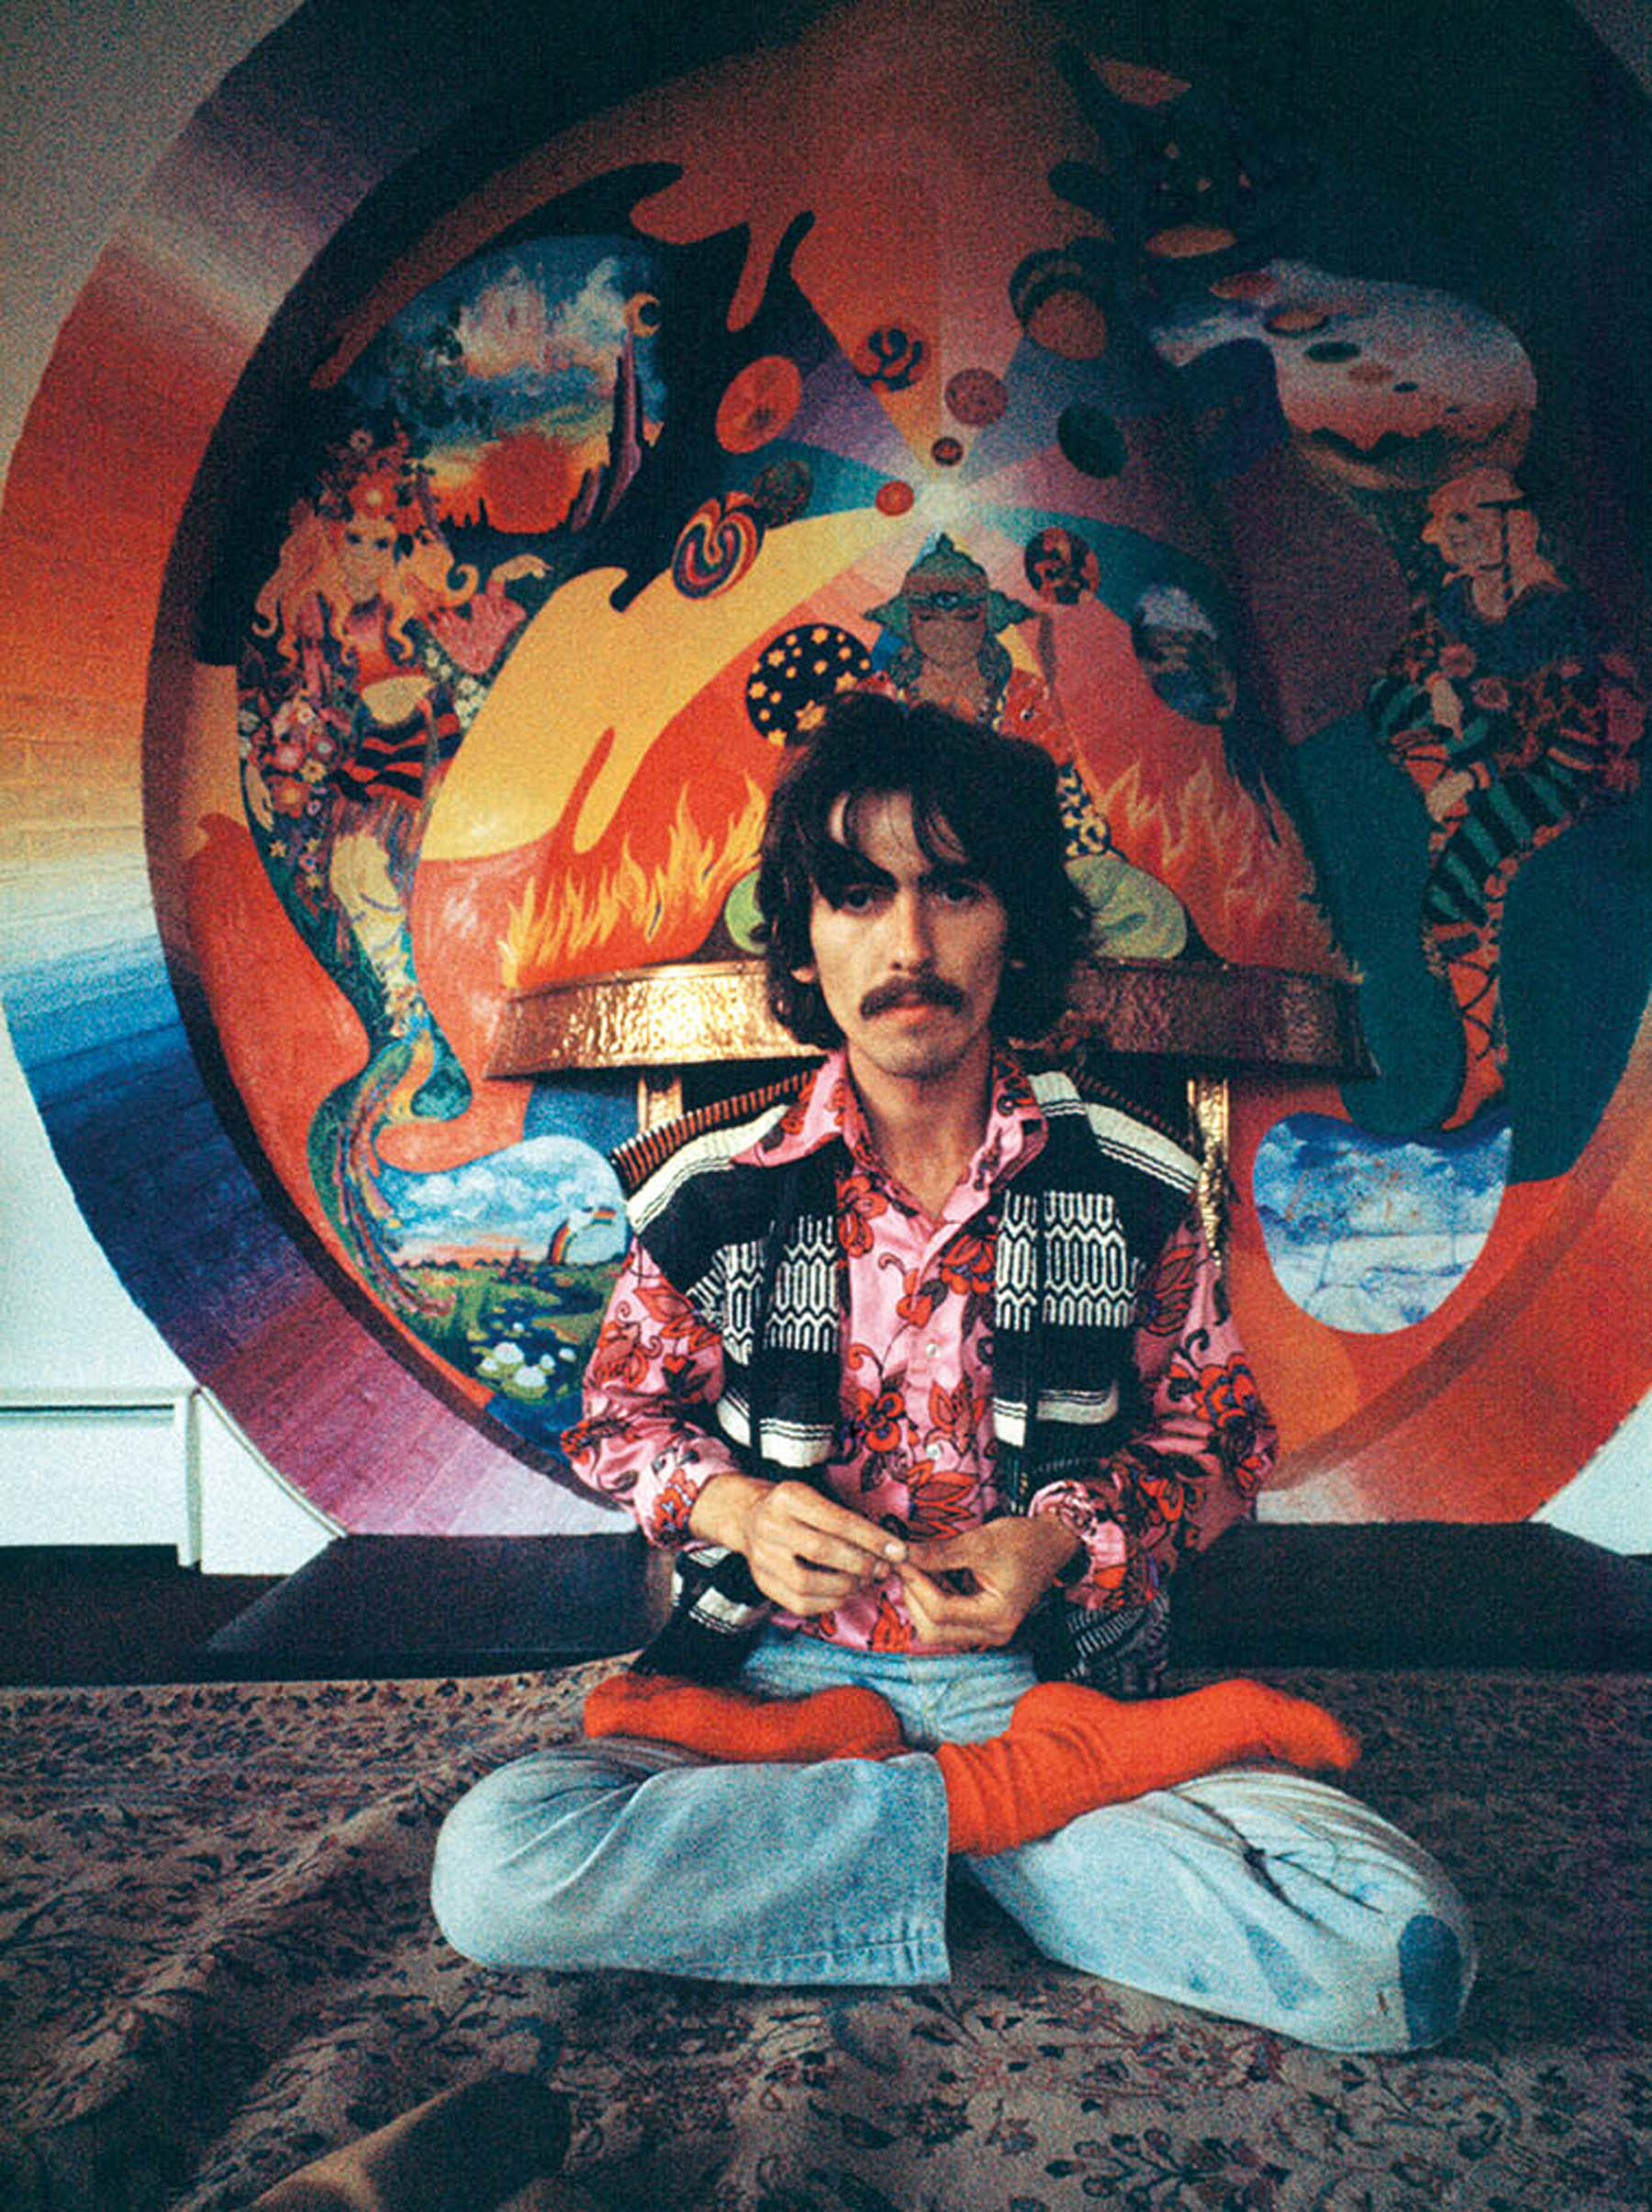 George Harrison 1967 Photo Courtesy Of And Copyrighted By THE HARRISON FAMILY